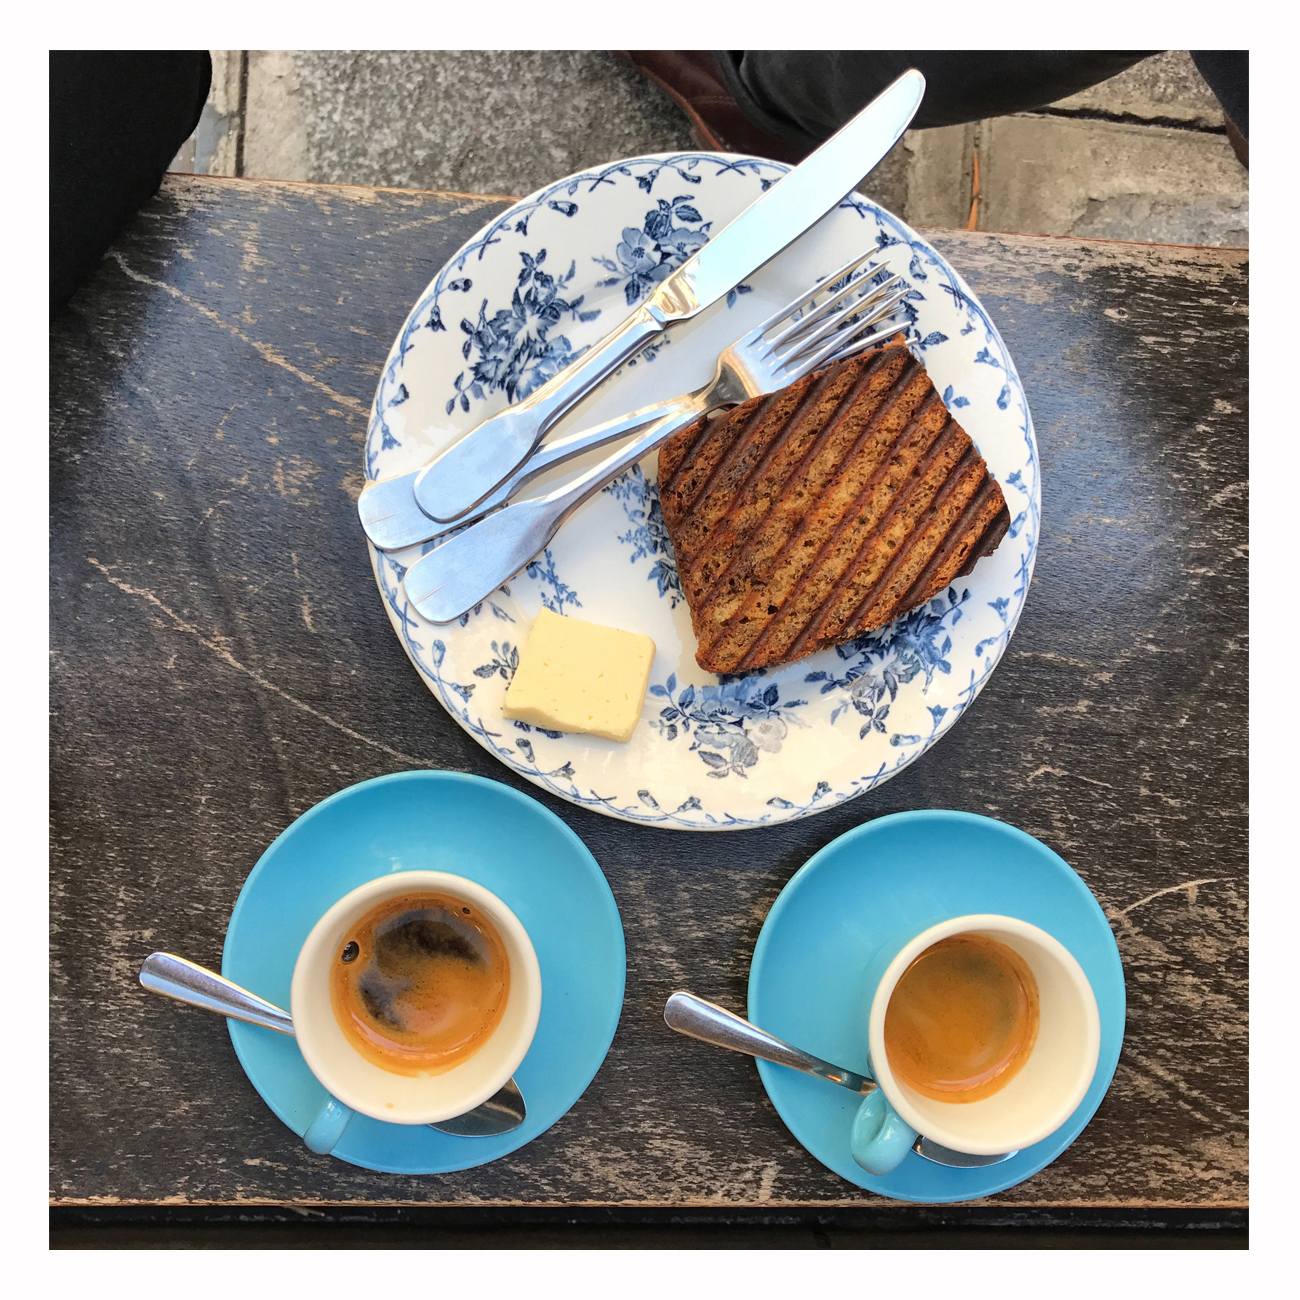 Not a bad way to start the day - espresso and banana bread from Telescope